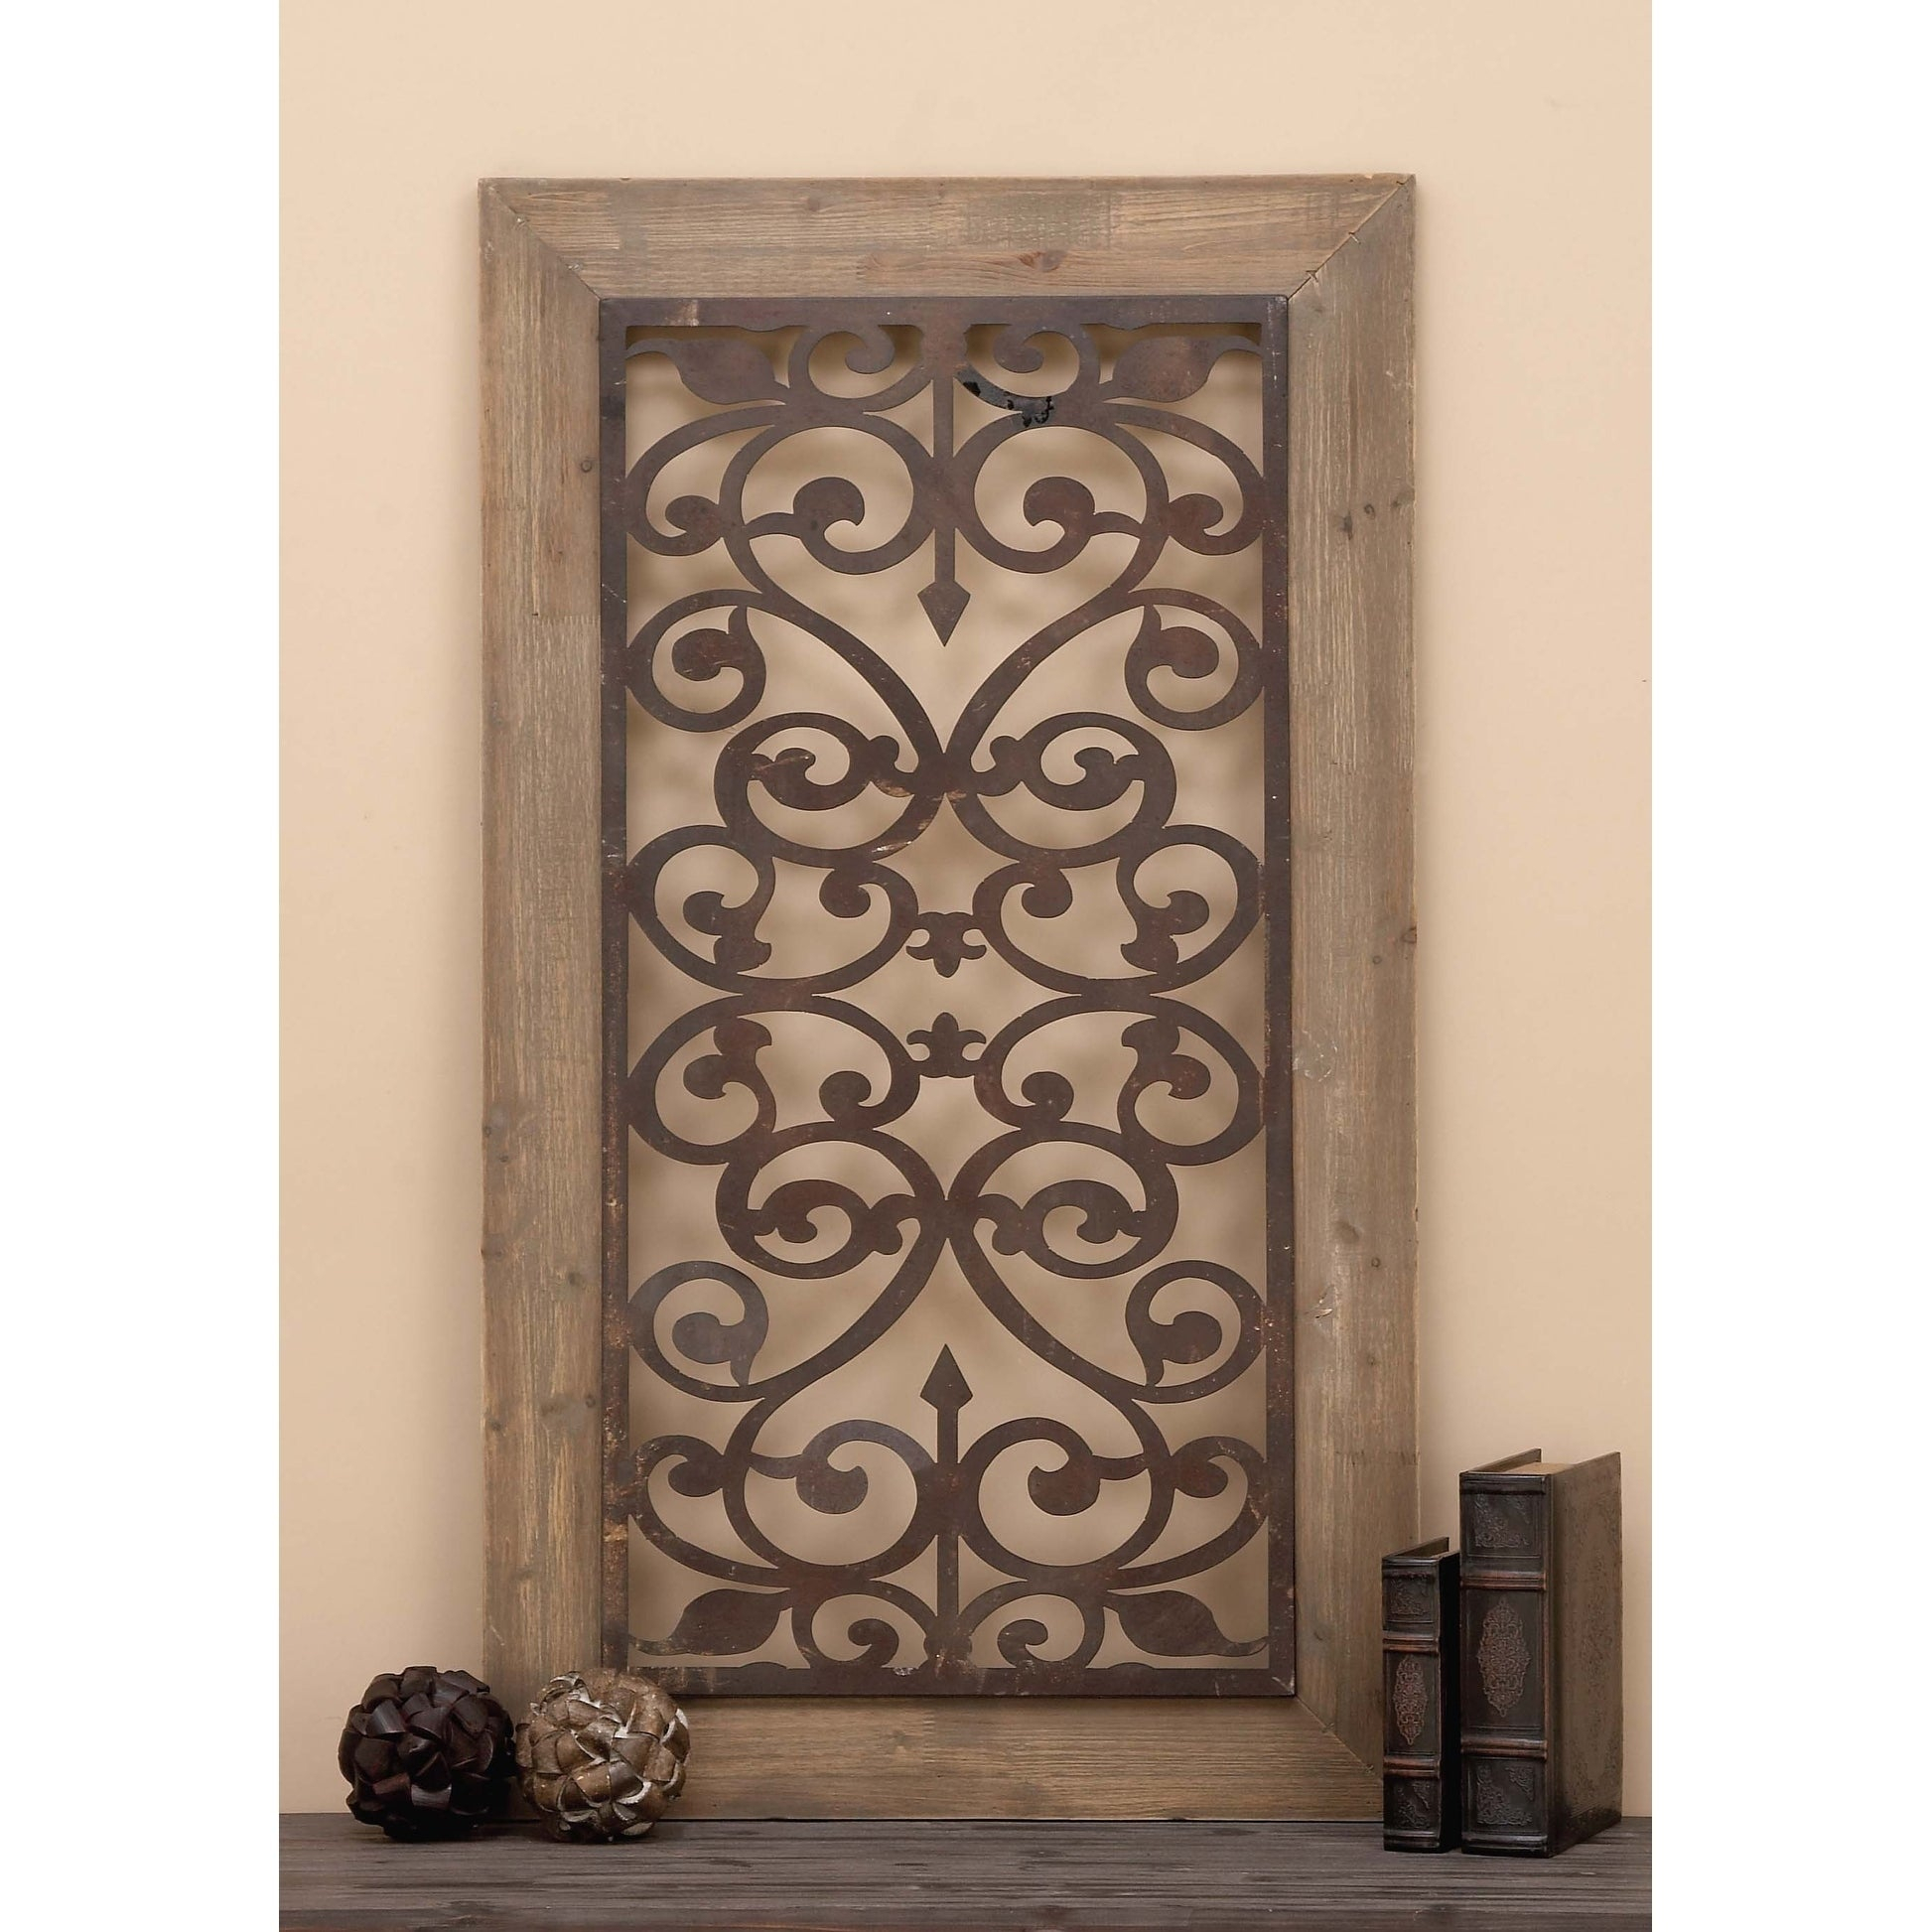 "Rings Wall Decor By Wrought Studio Throughout Popular Shop 26"" X 46"" Distressed Wood & Brown Metal Wall Art Panel W (View 13 of 20)"